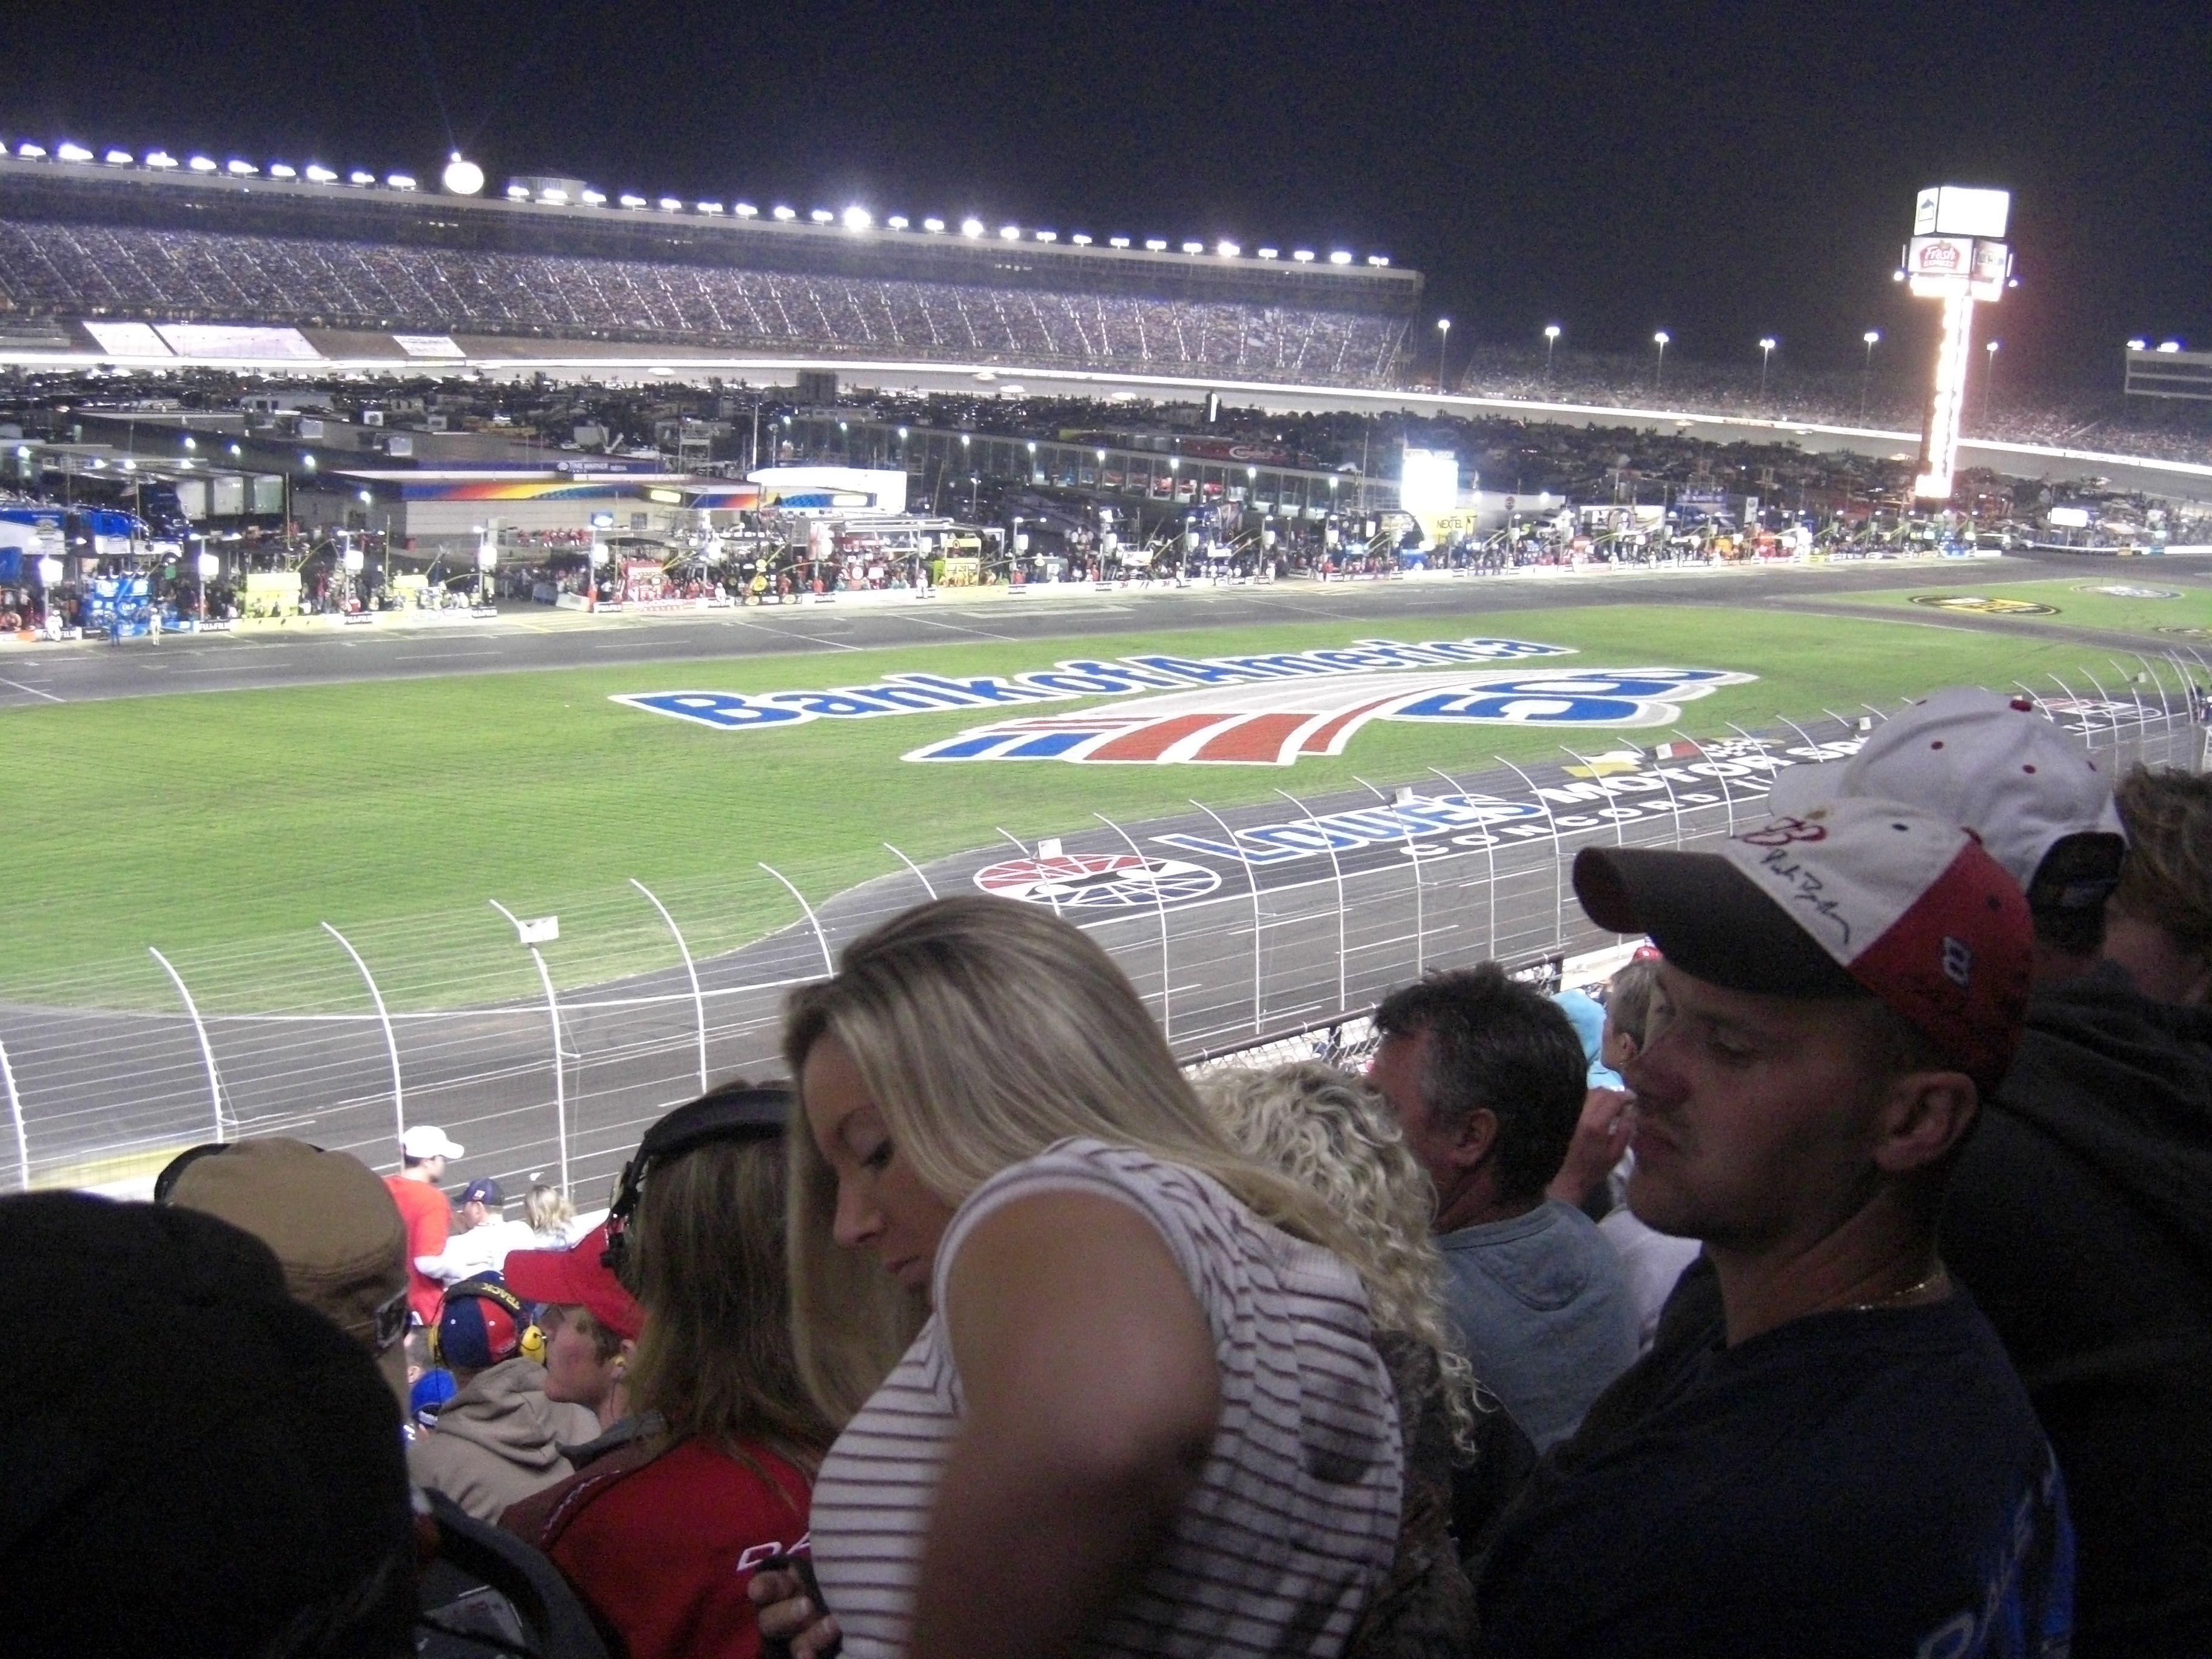 Charlotte Motor Speedway Section Chry A Row 20 Seat 5